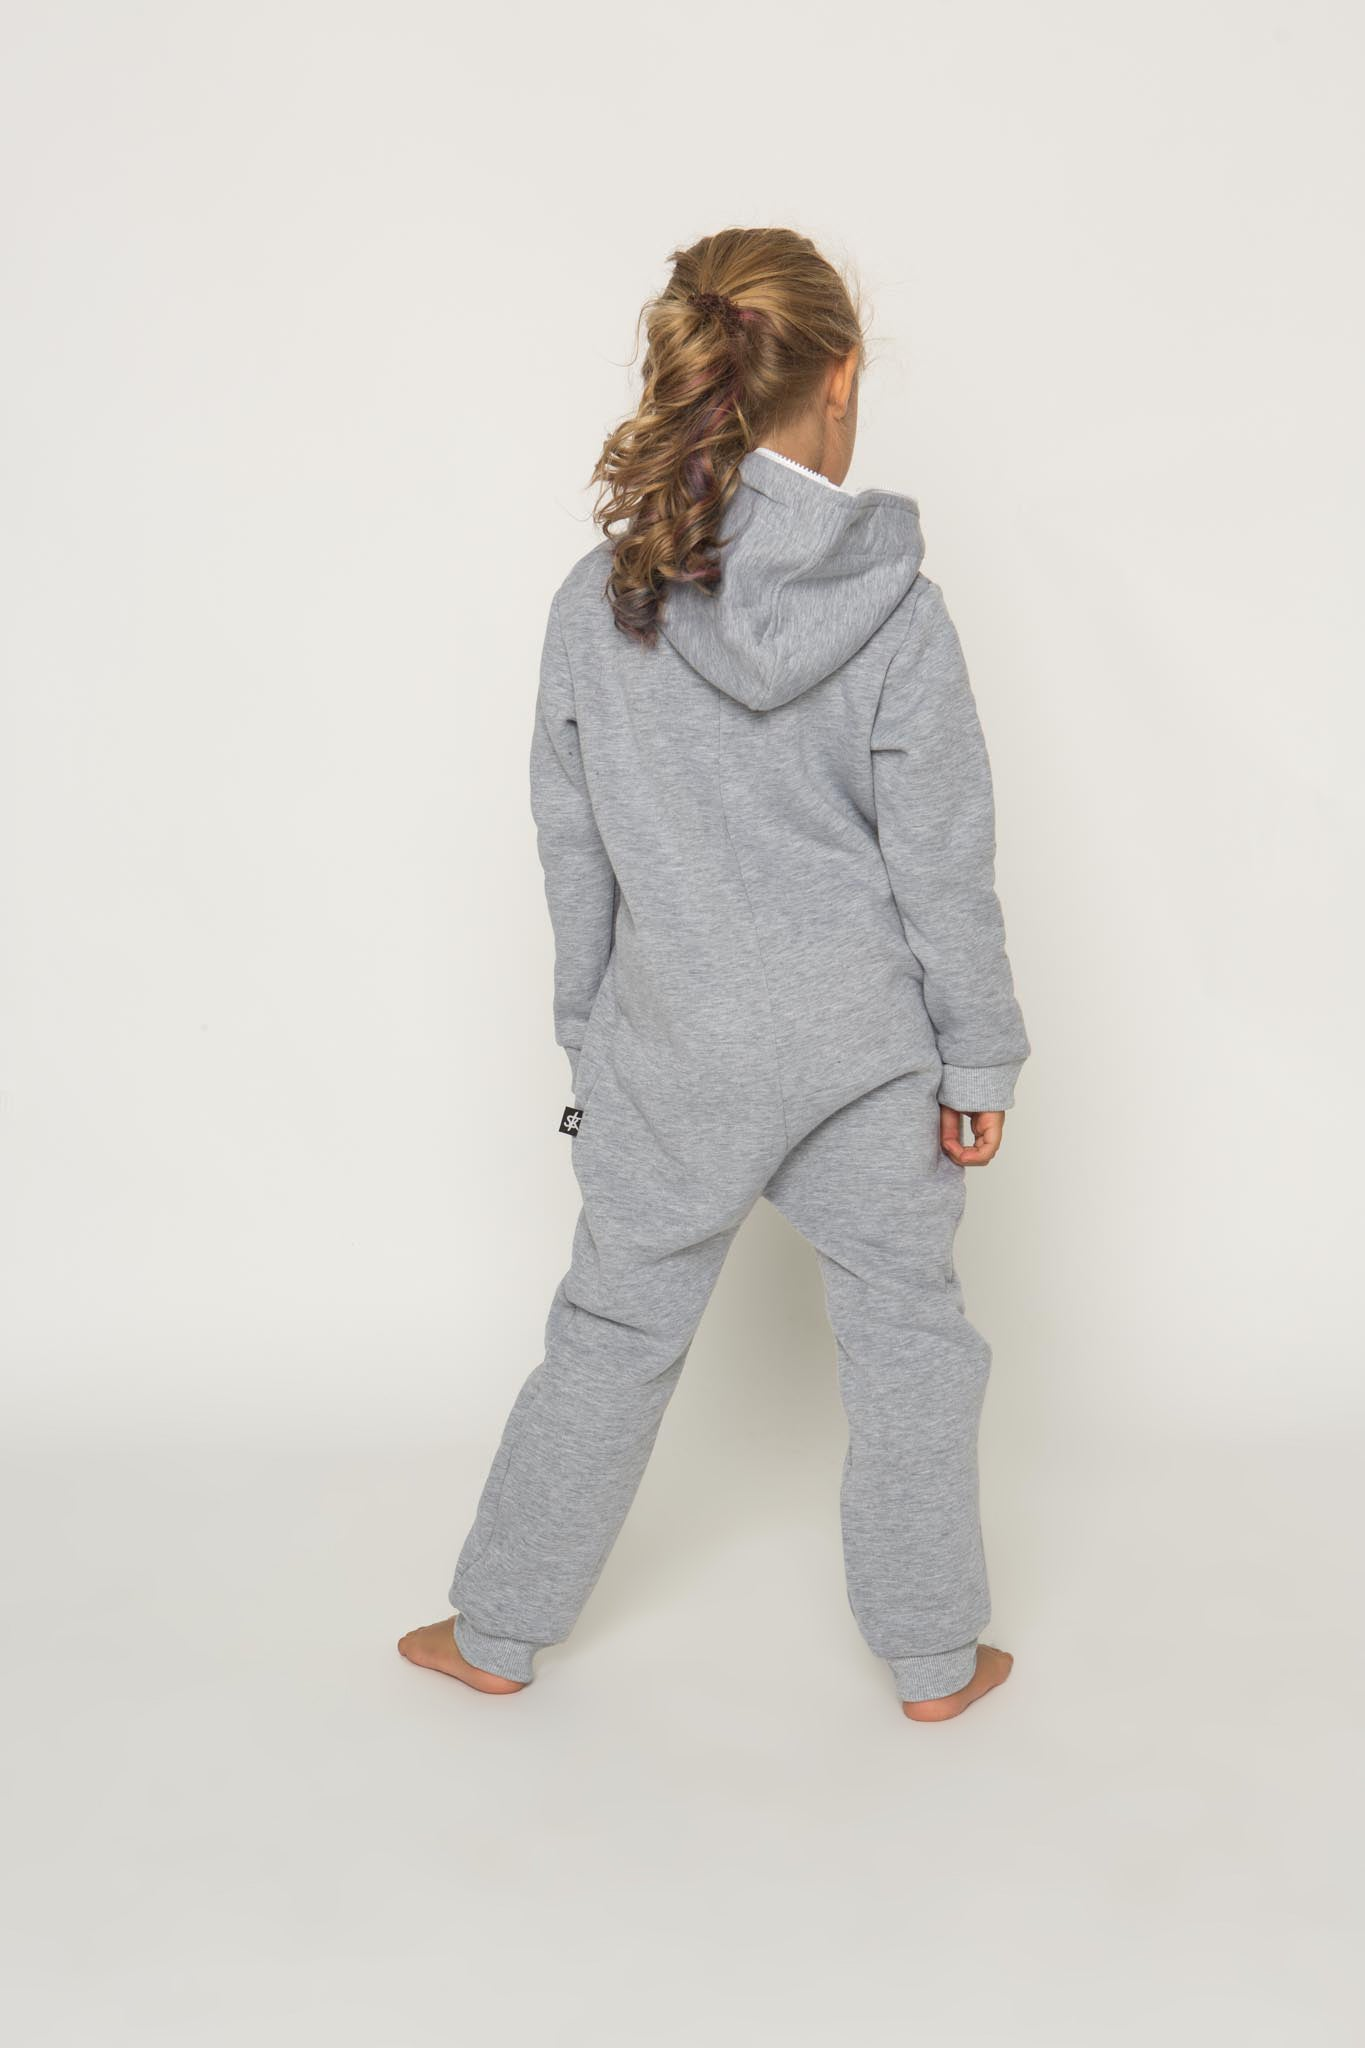 Sofa Killer light grey unisex kids onesie